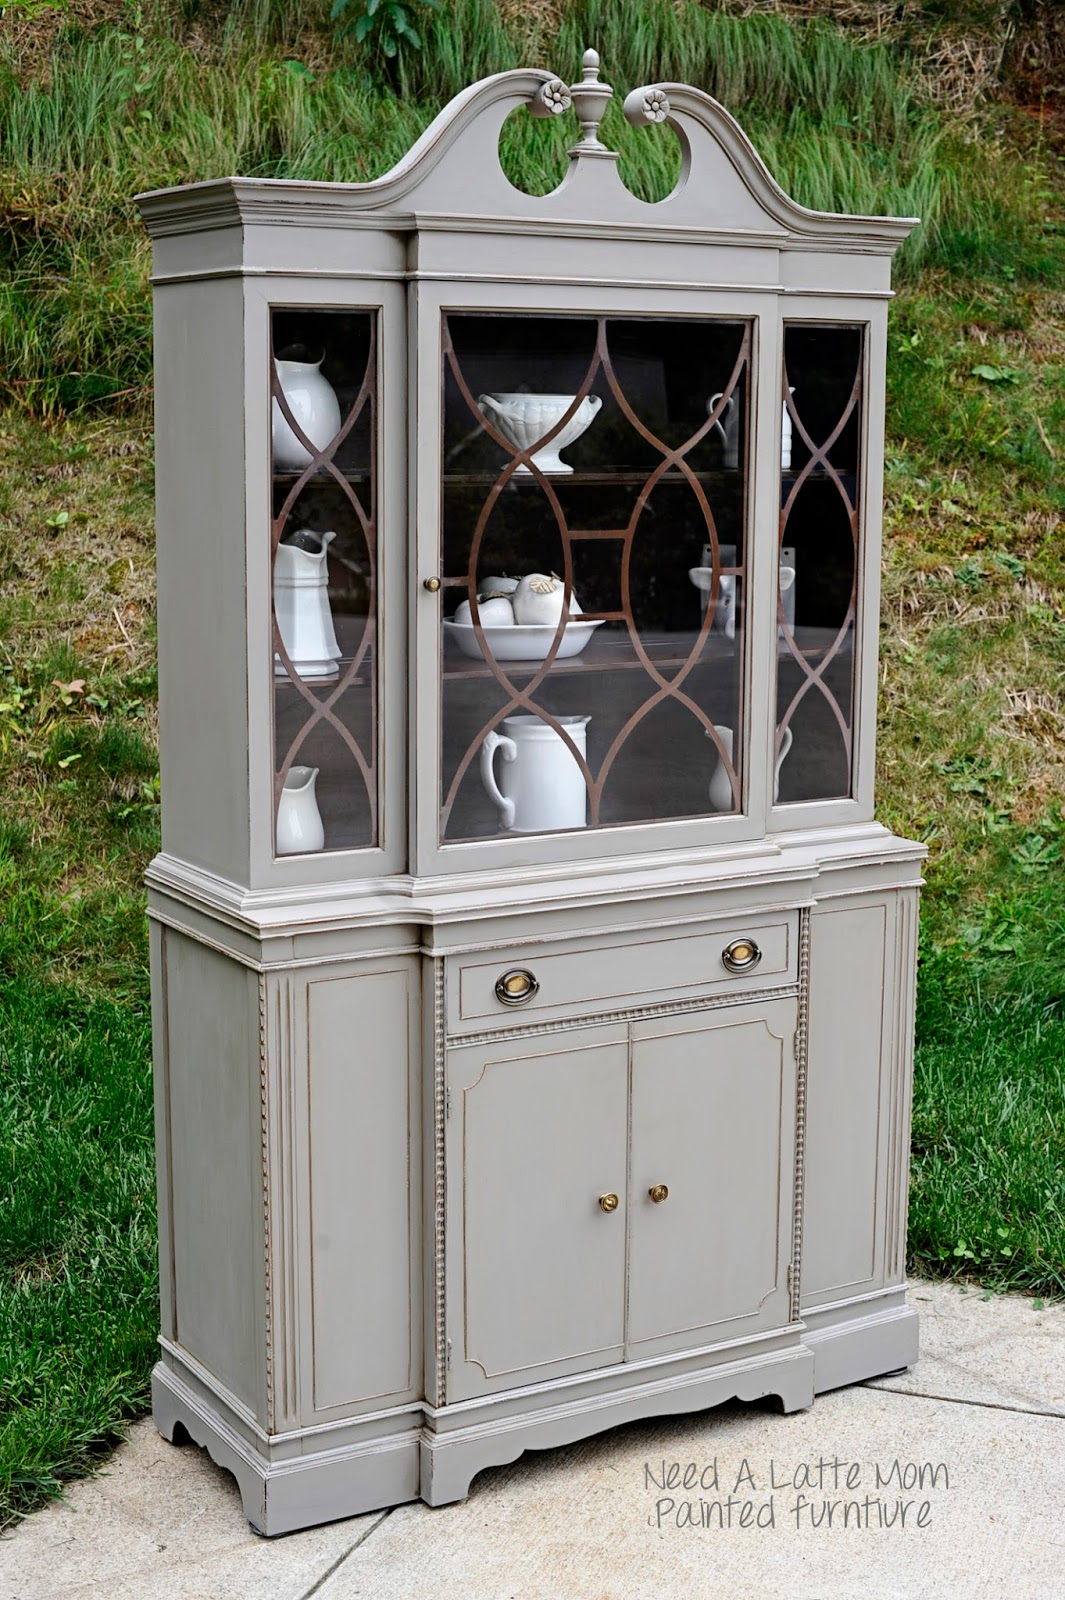 need a latte mom french linen china cabinet asheville furniture painter. Black Bedroom Furniture Sets. Home Design Ideas